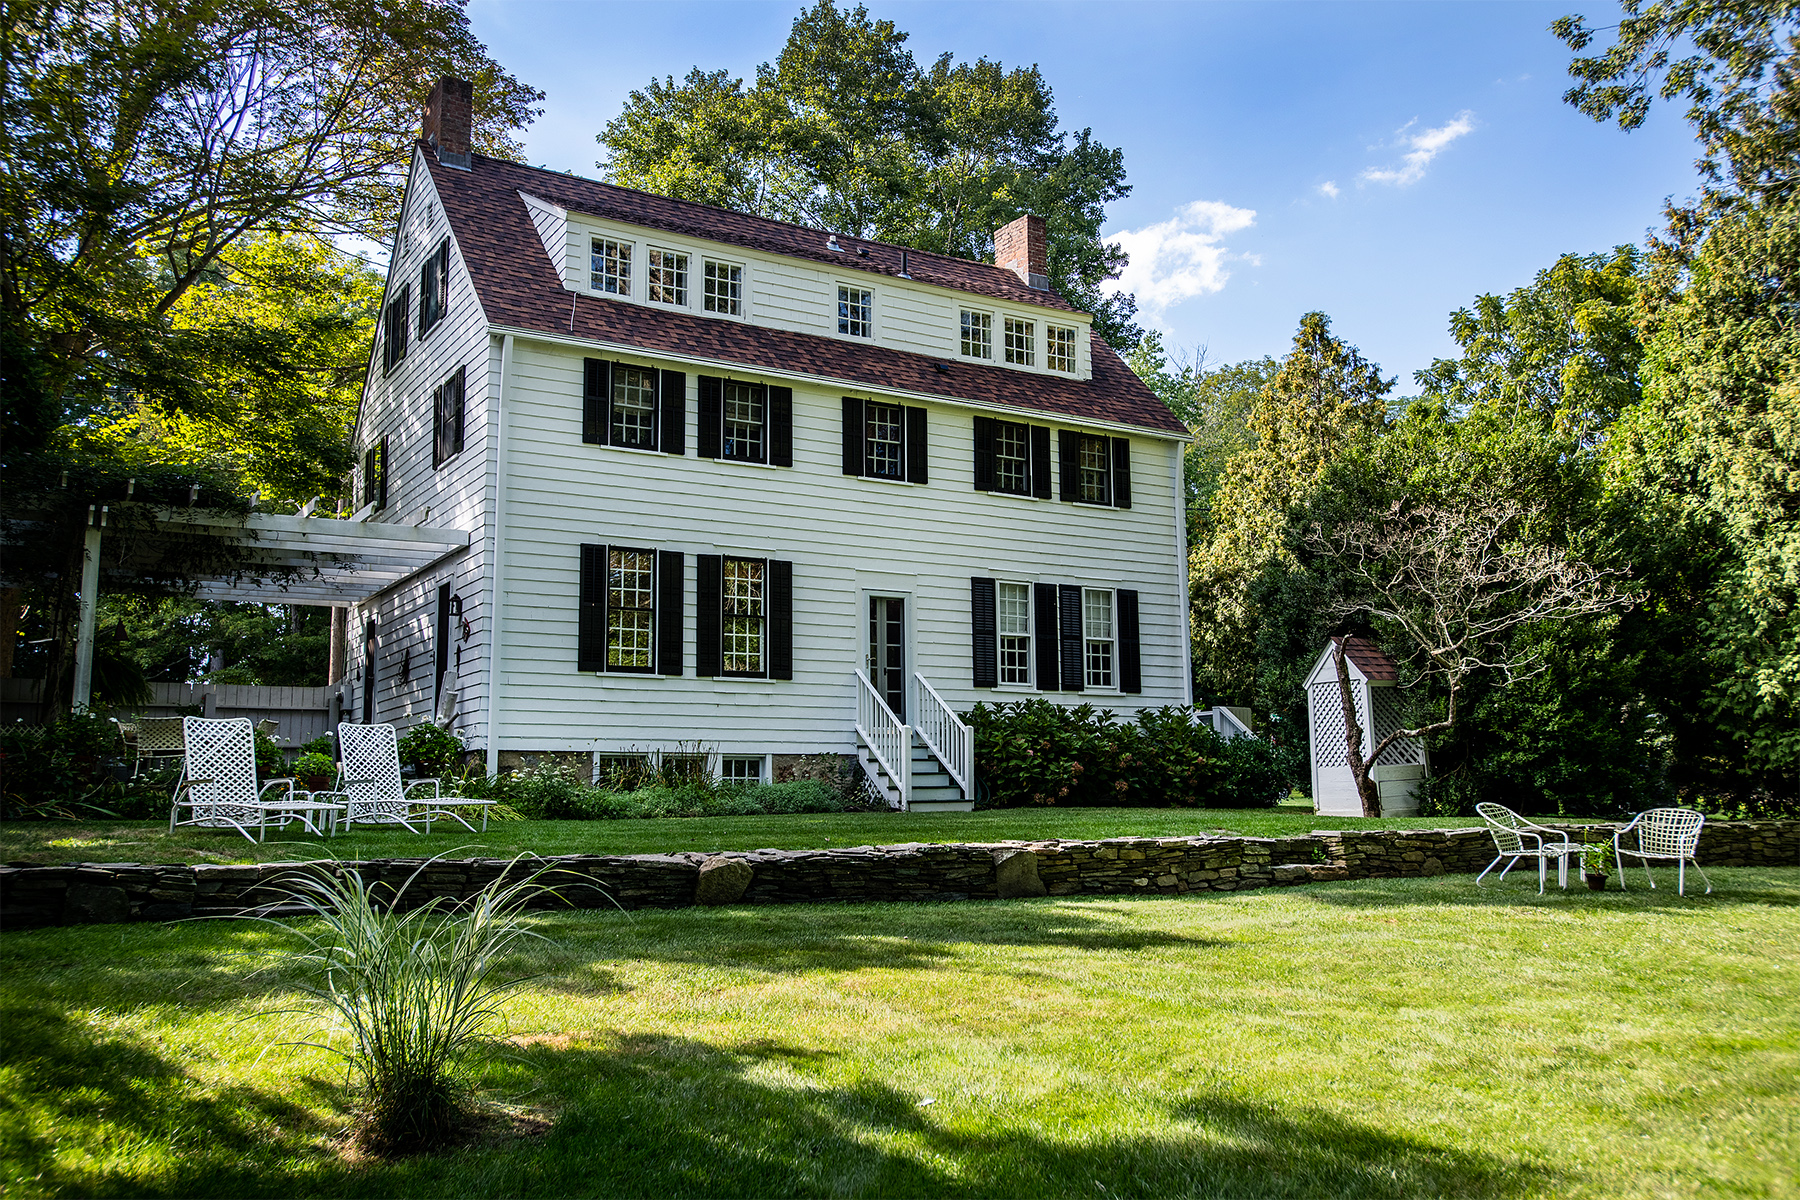 Single Family Homes for Active at Historical Living with Modern Flair! 95 Lyme Street Old Lyme, Connecticut 06371 United States